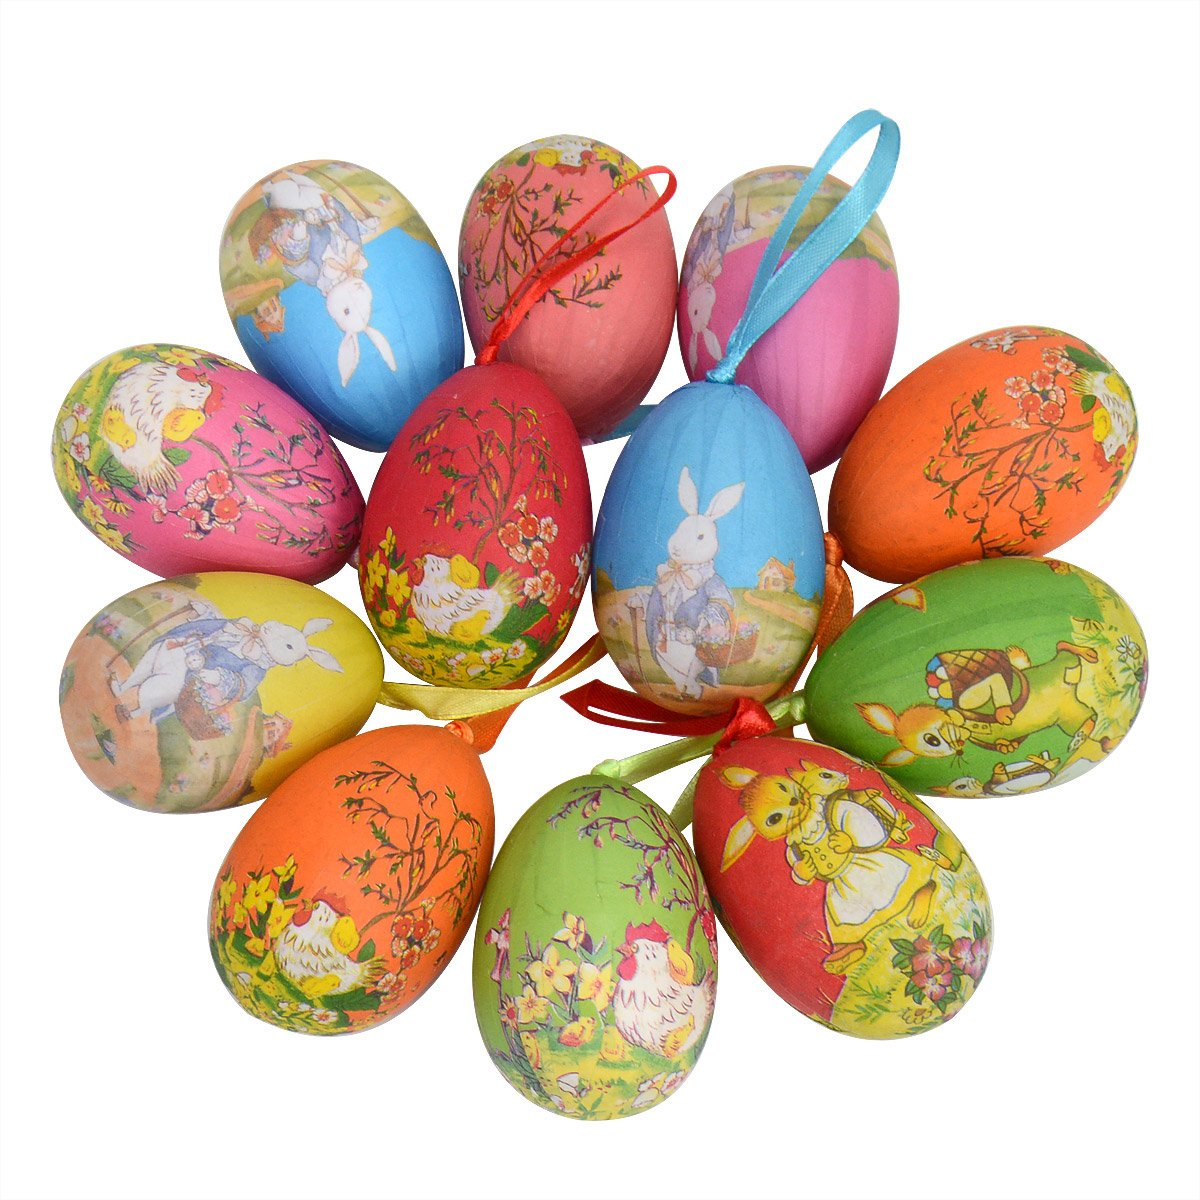 12pcs New Vintage Style Paper Mache Egg Hanging Ornaments Easter Decoration Gardeningwill